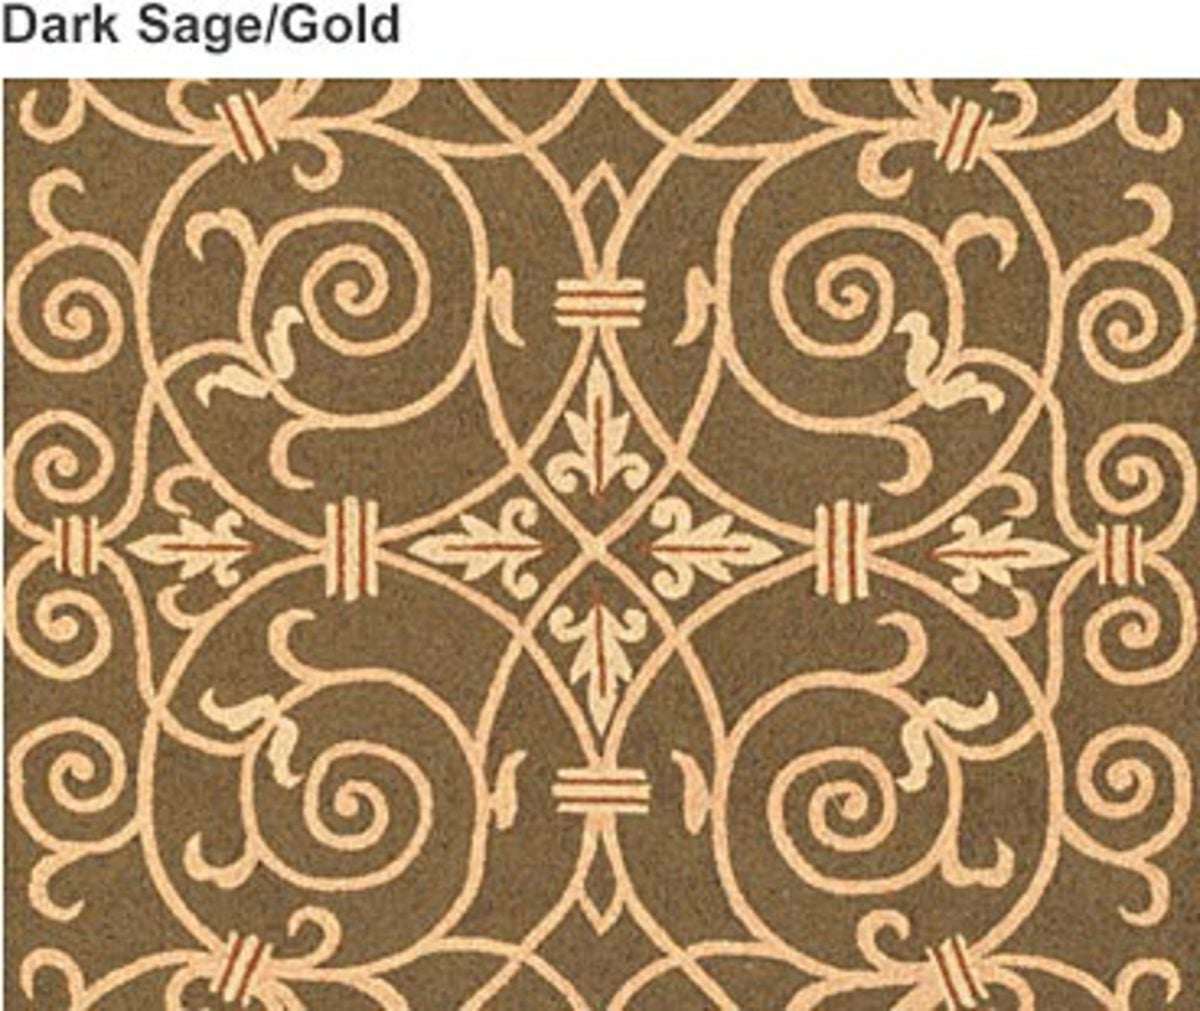 6' x 9' Scroll Wool Hook Rug - DARK SAGE/GOLD